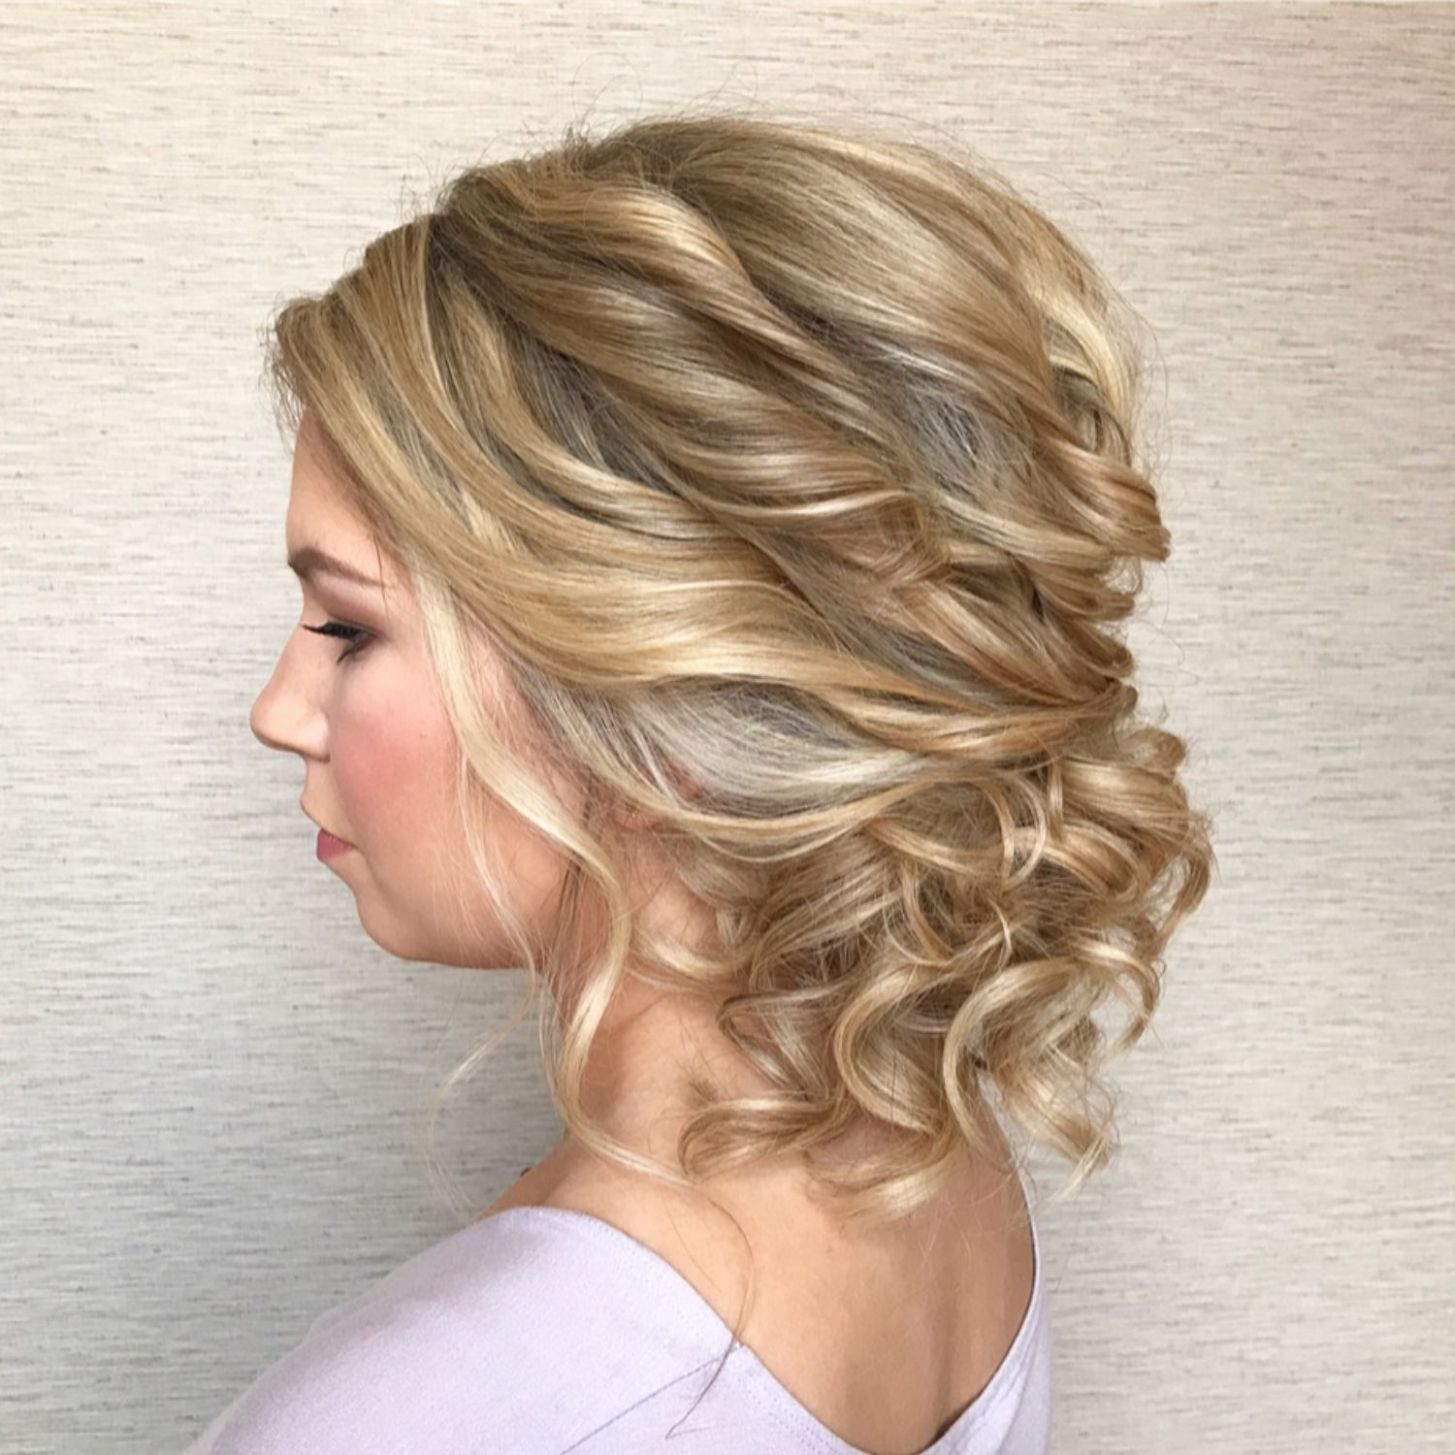 Blonde Curly Updo For Prom Updos For Medium Length Hair Medium Length Hair Styles Medium Hair Styles